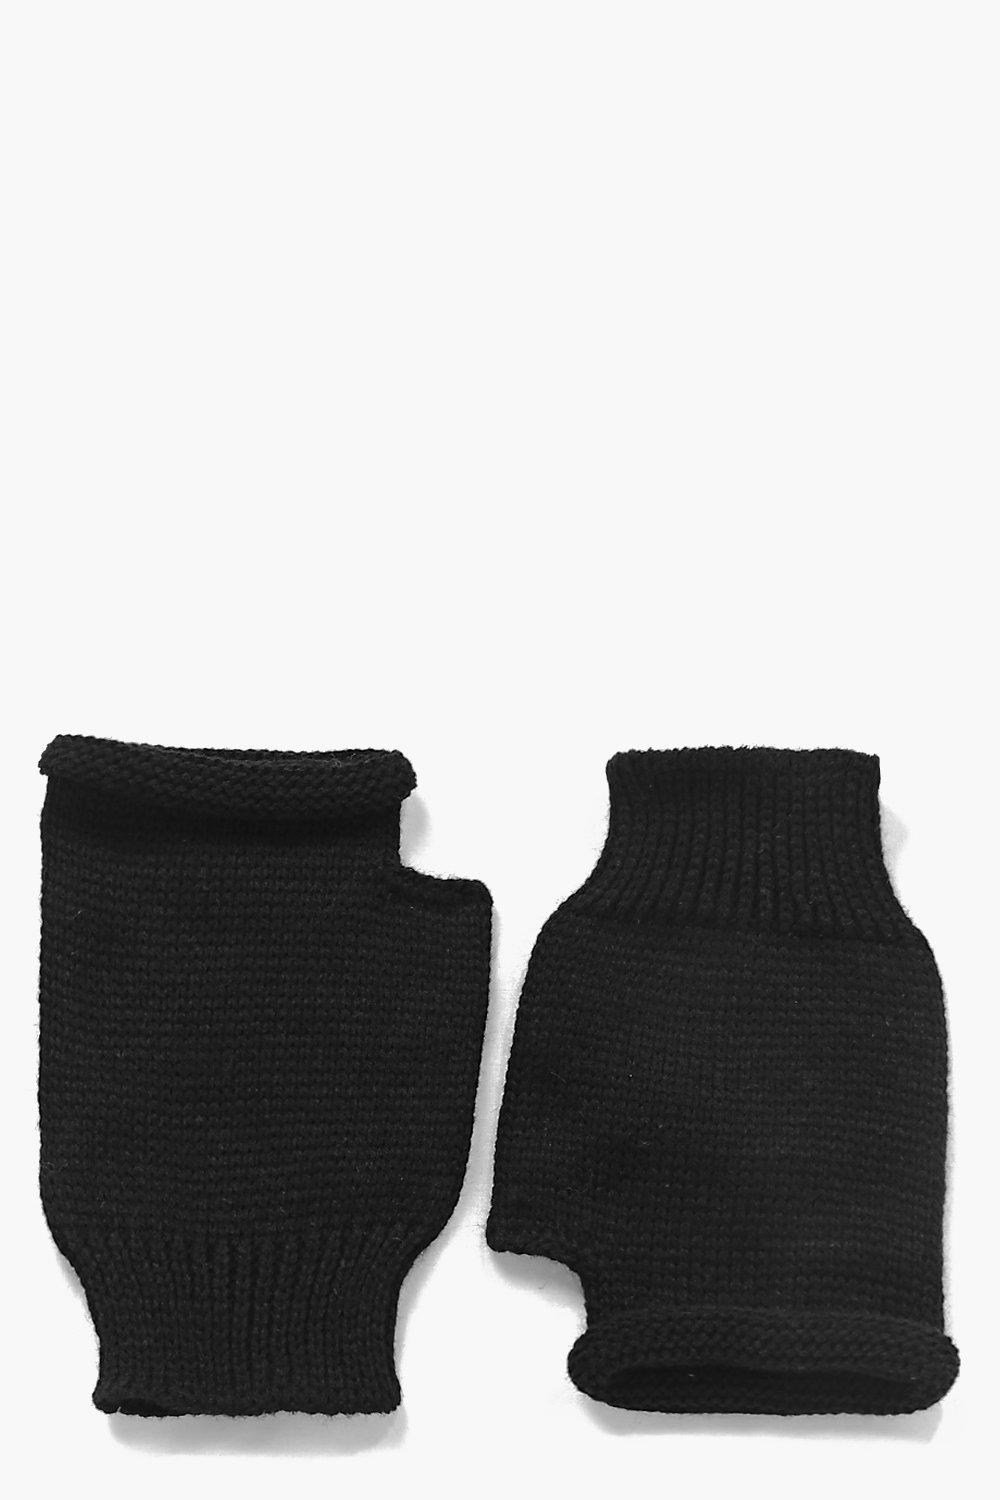 Macy Fingerless Soft Knit Mittens